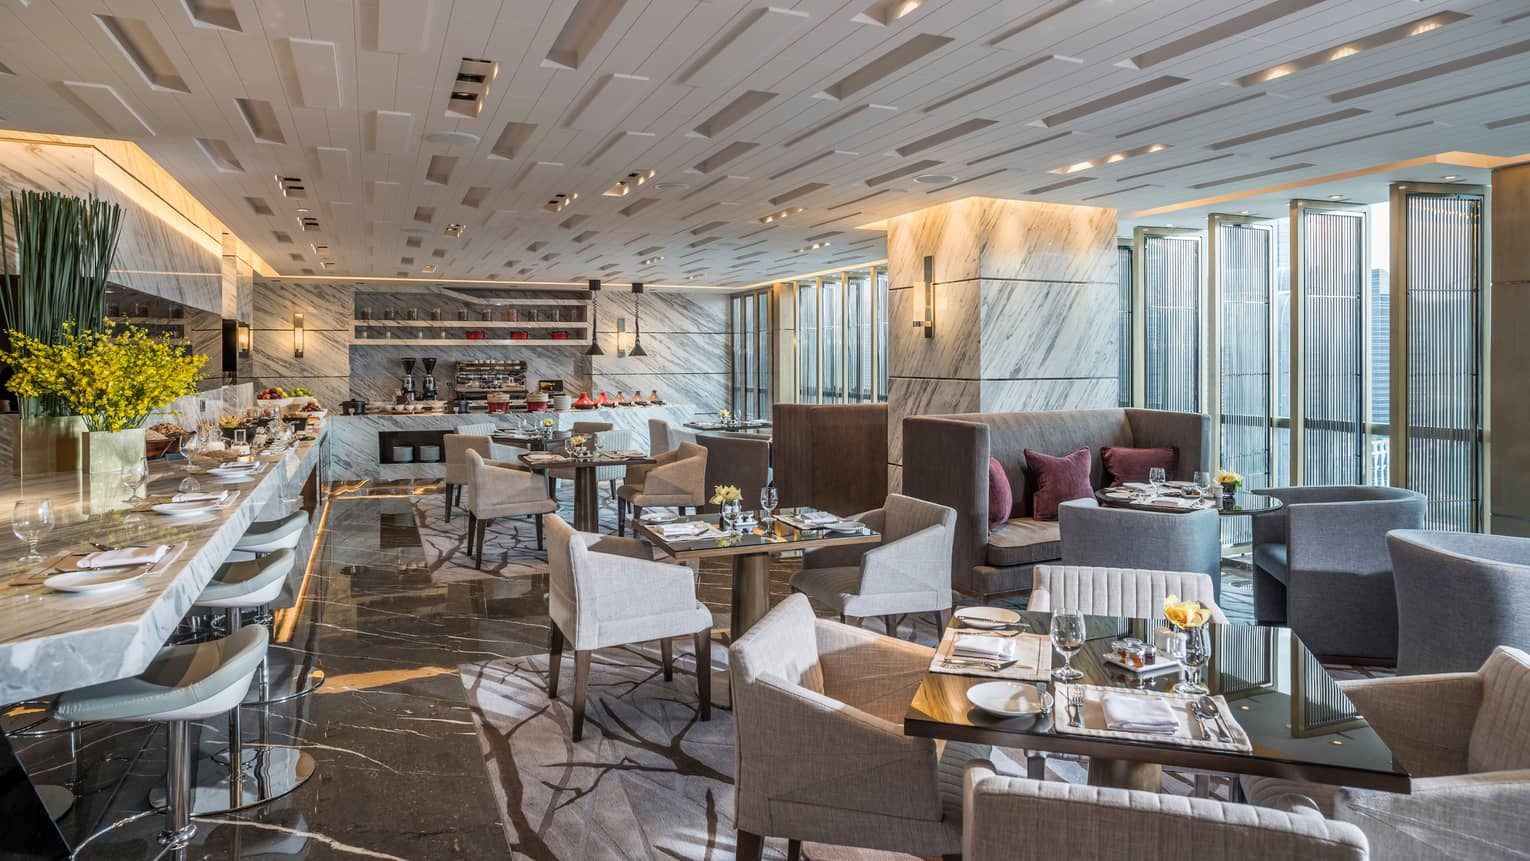 Executive Club Lounge modern dining room with decorative white ceilings, marble bar